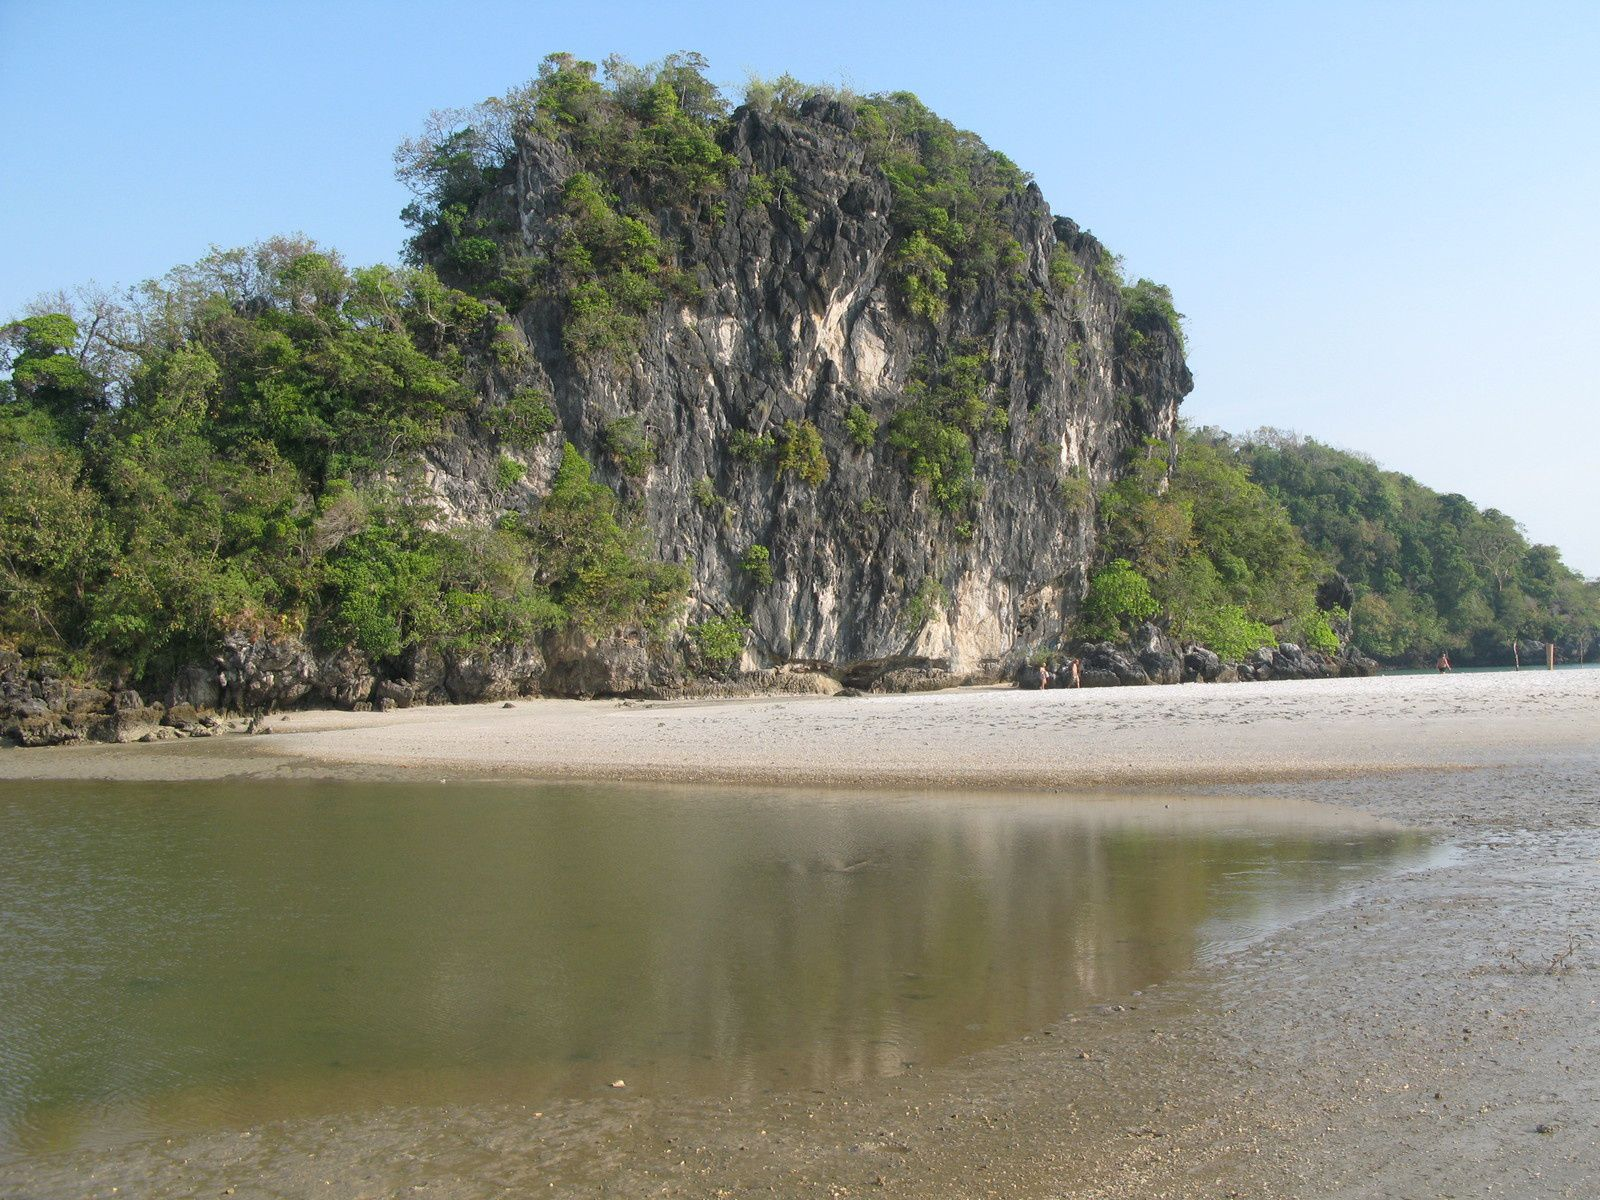 Plage d'Ao Nang et ses coquillages